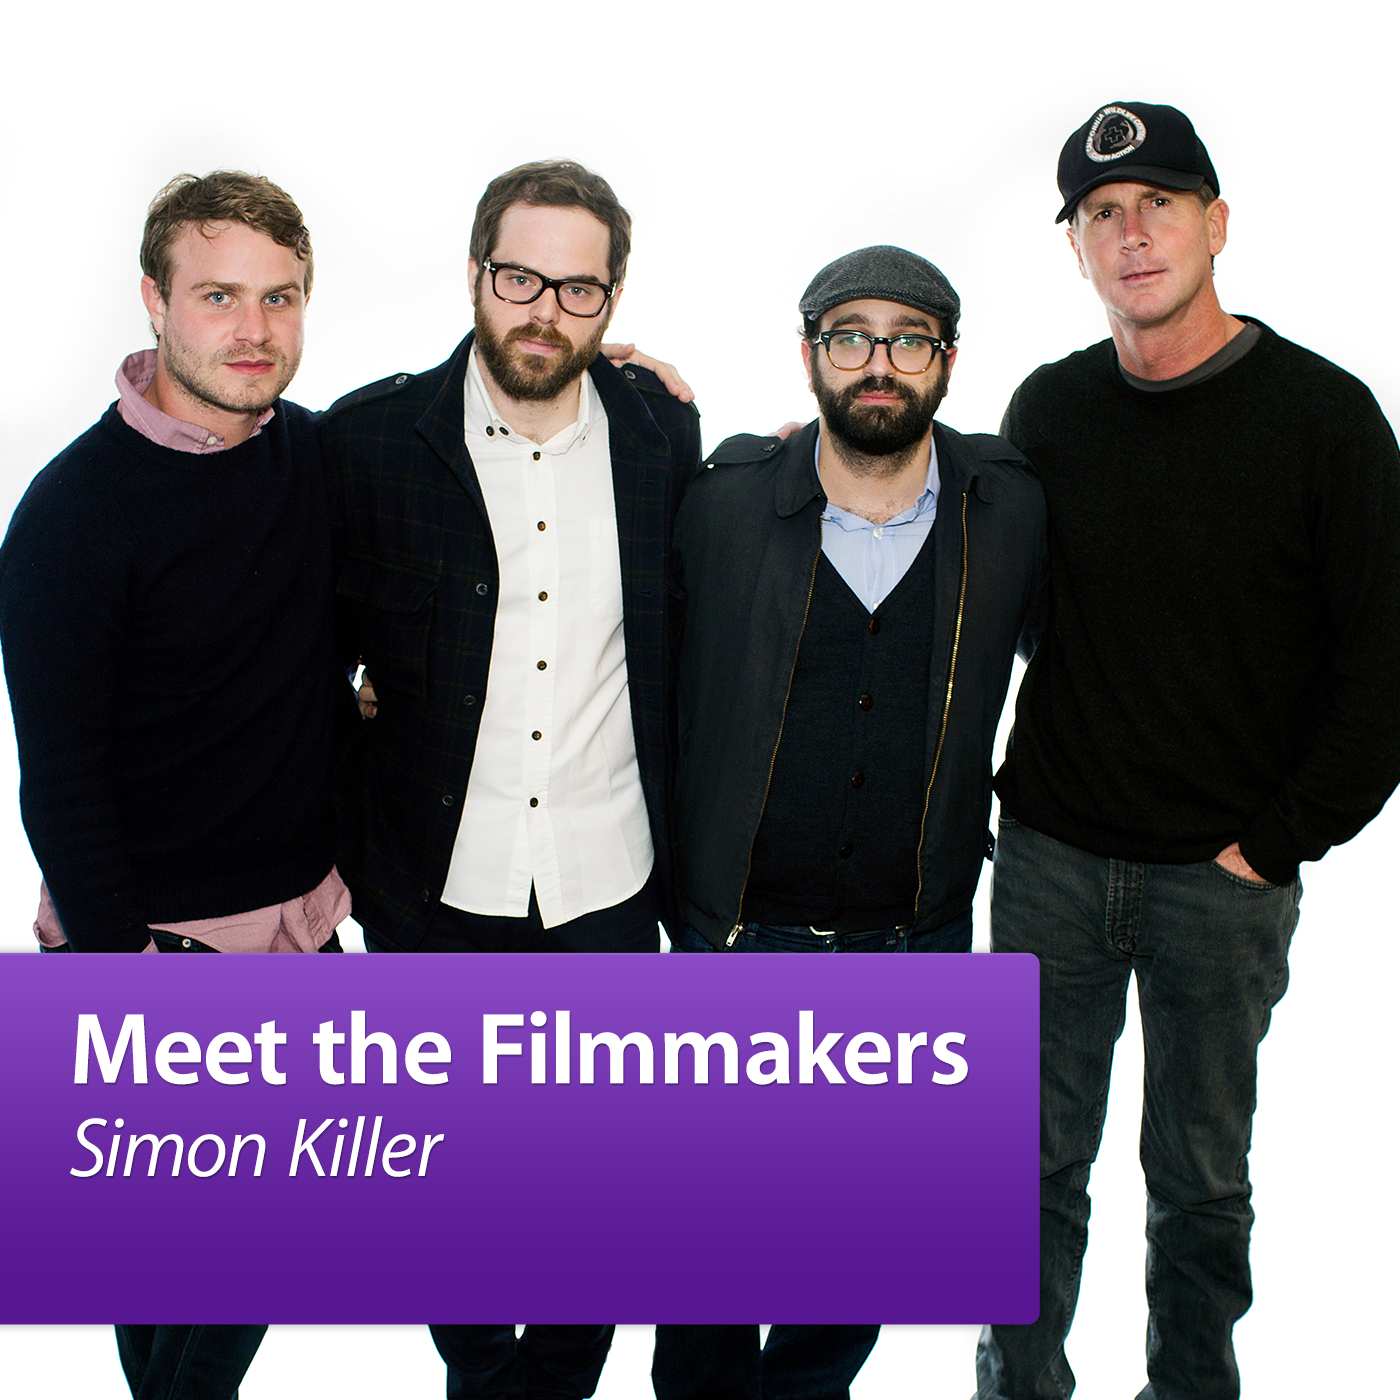 Simon Killer: Meet the Filmmakers